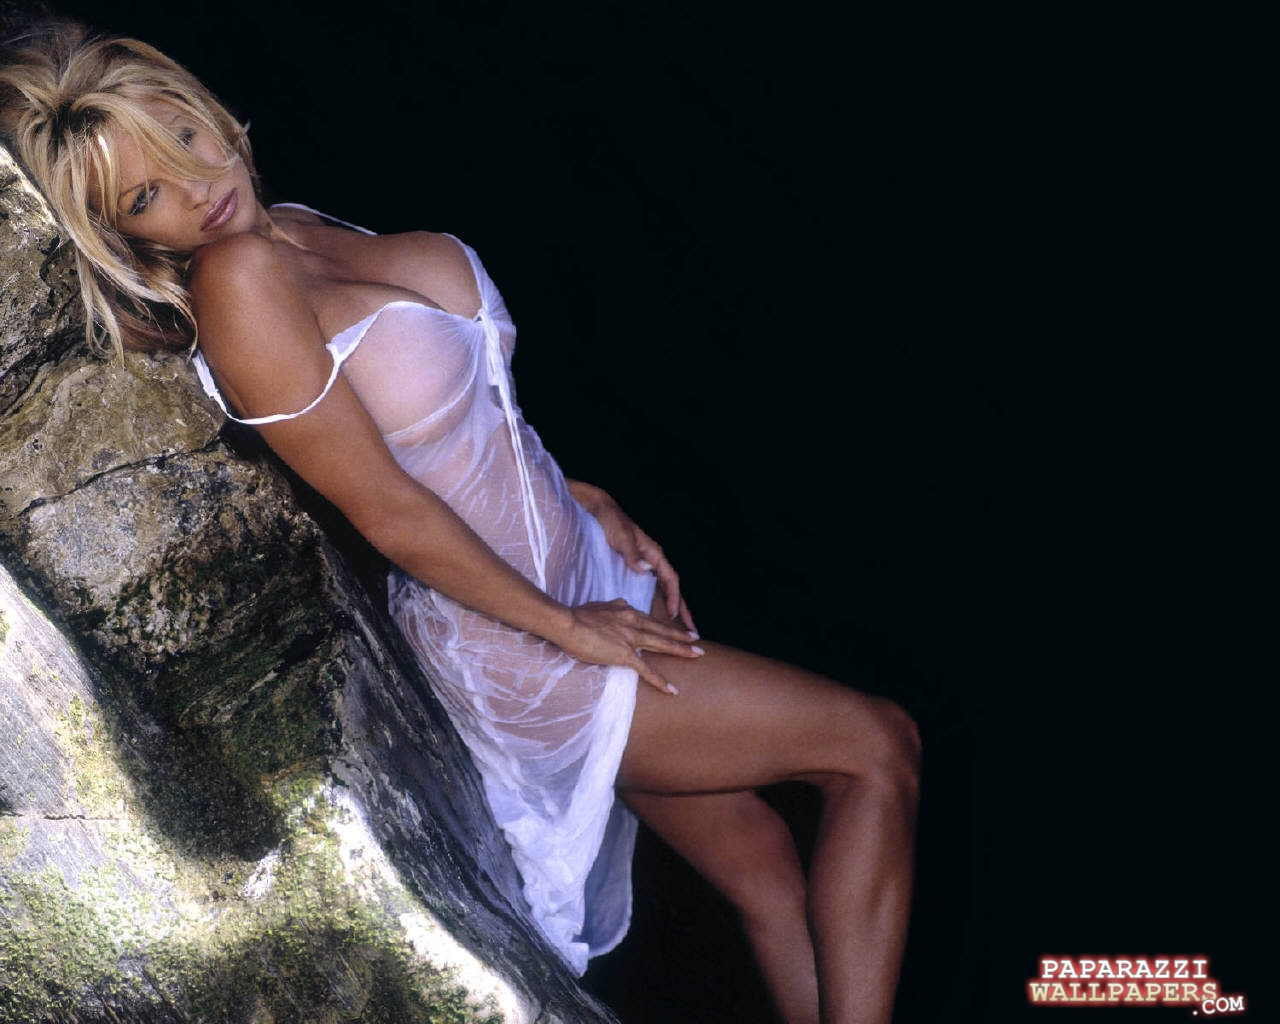 pamela anderson wallpapers 114